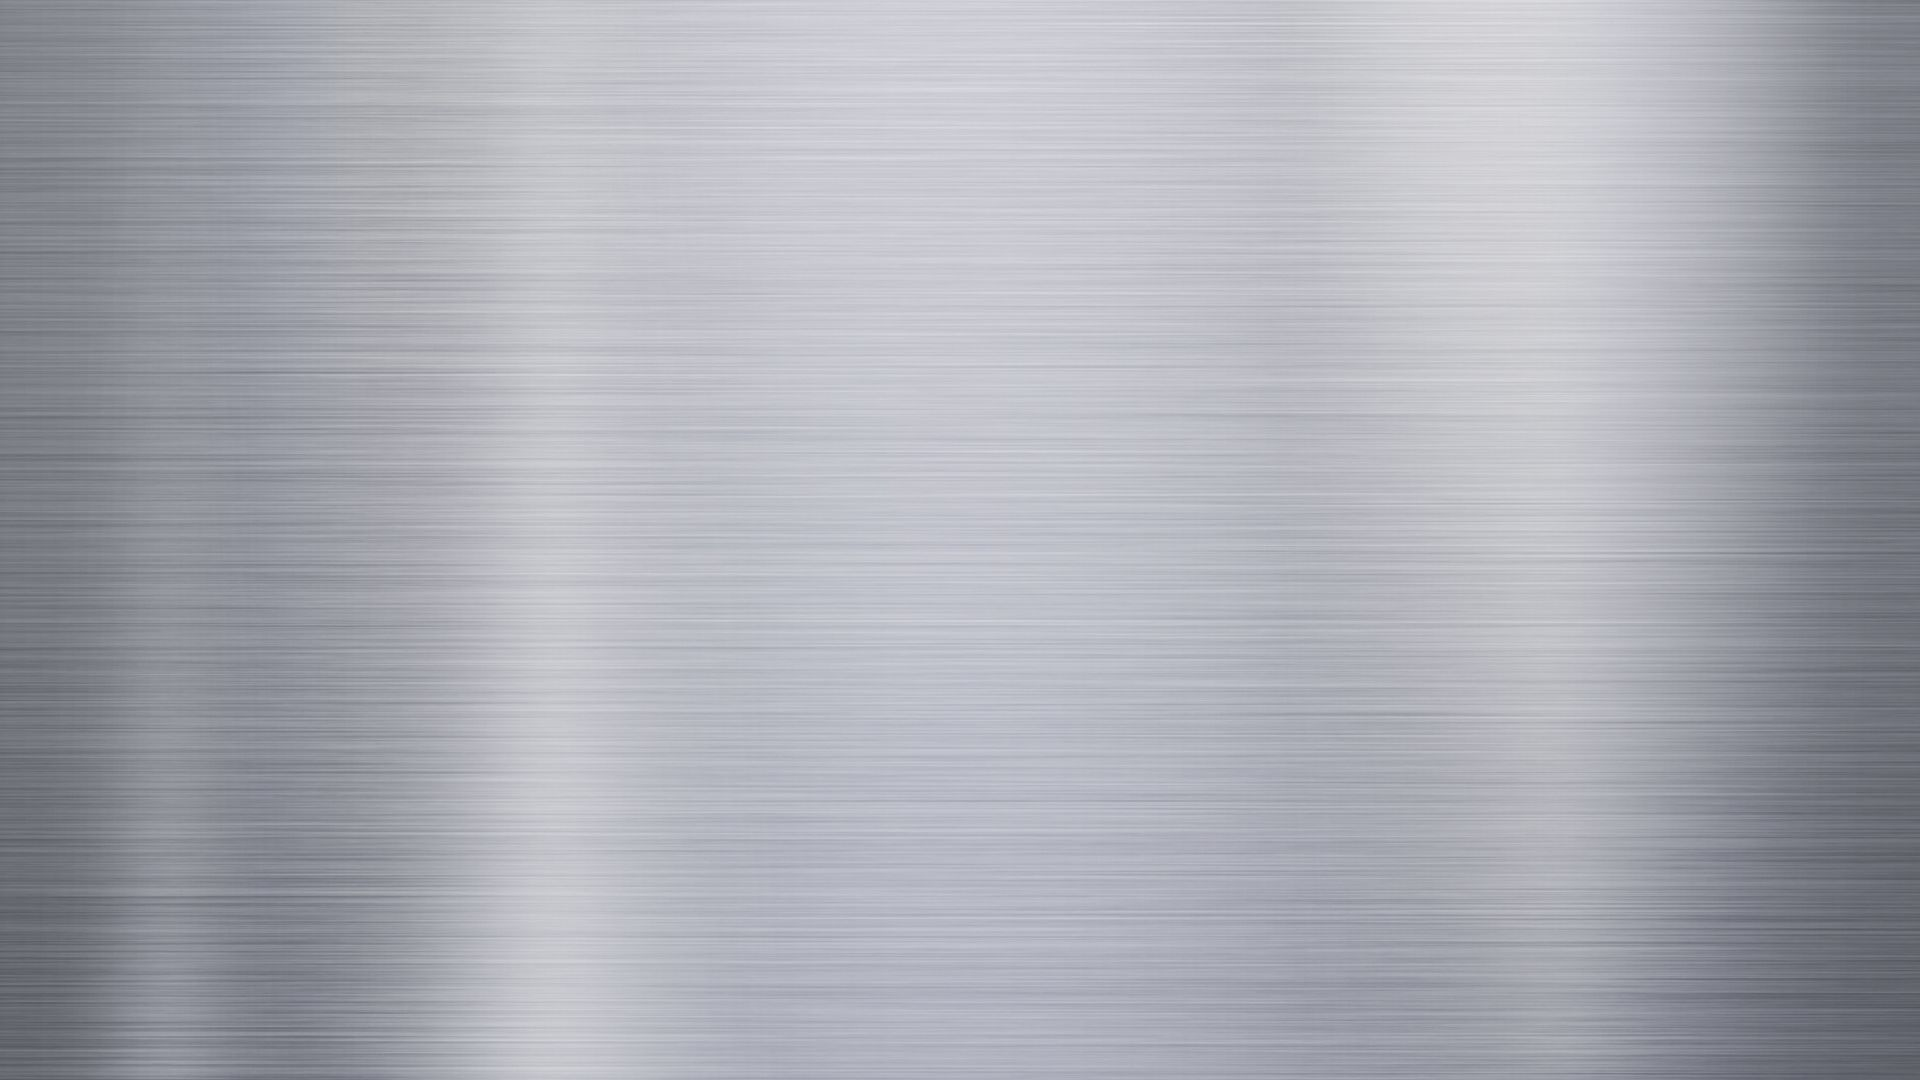 Image Result For Steel Texture Metal Texture Brushed Metal Texture Textured Background